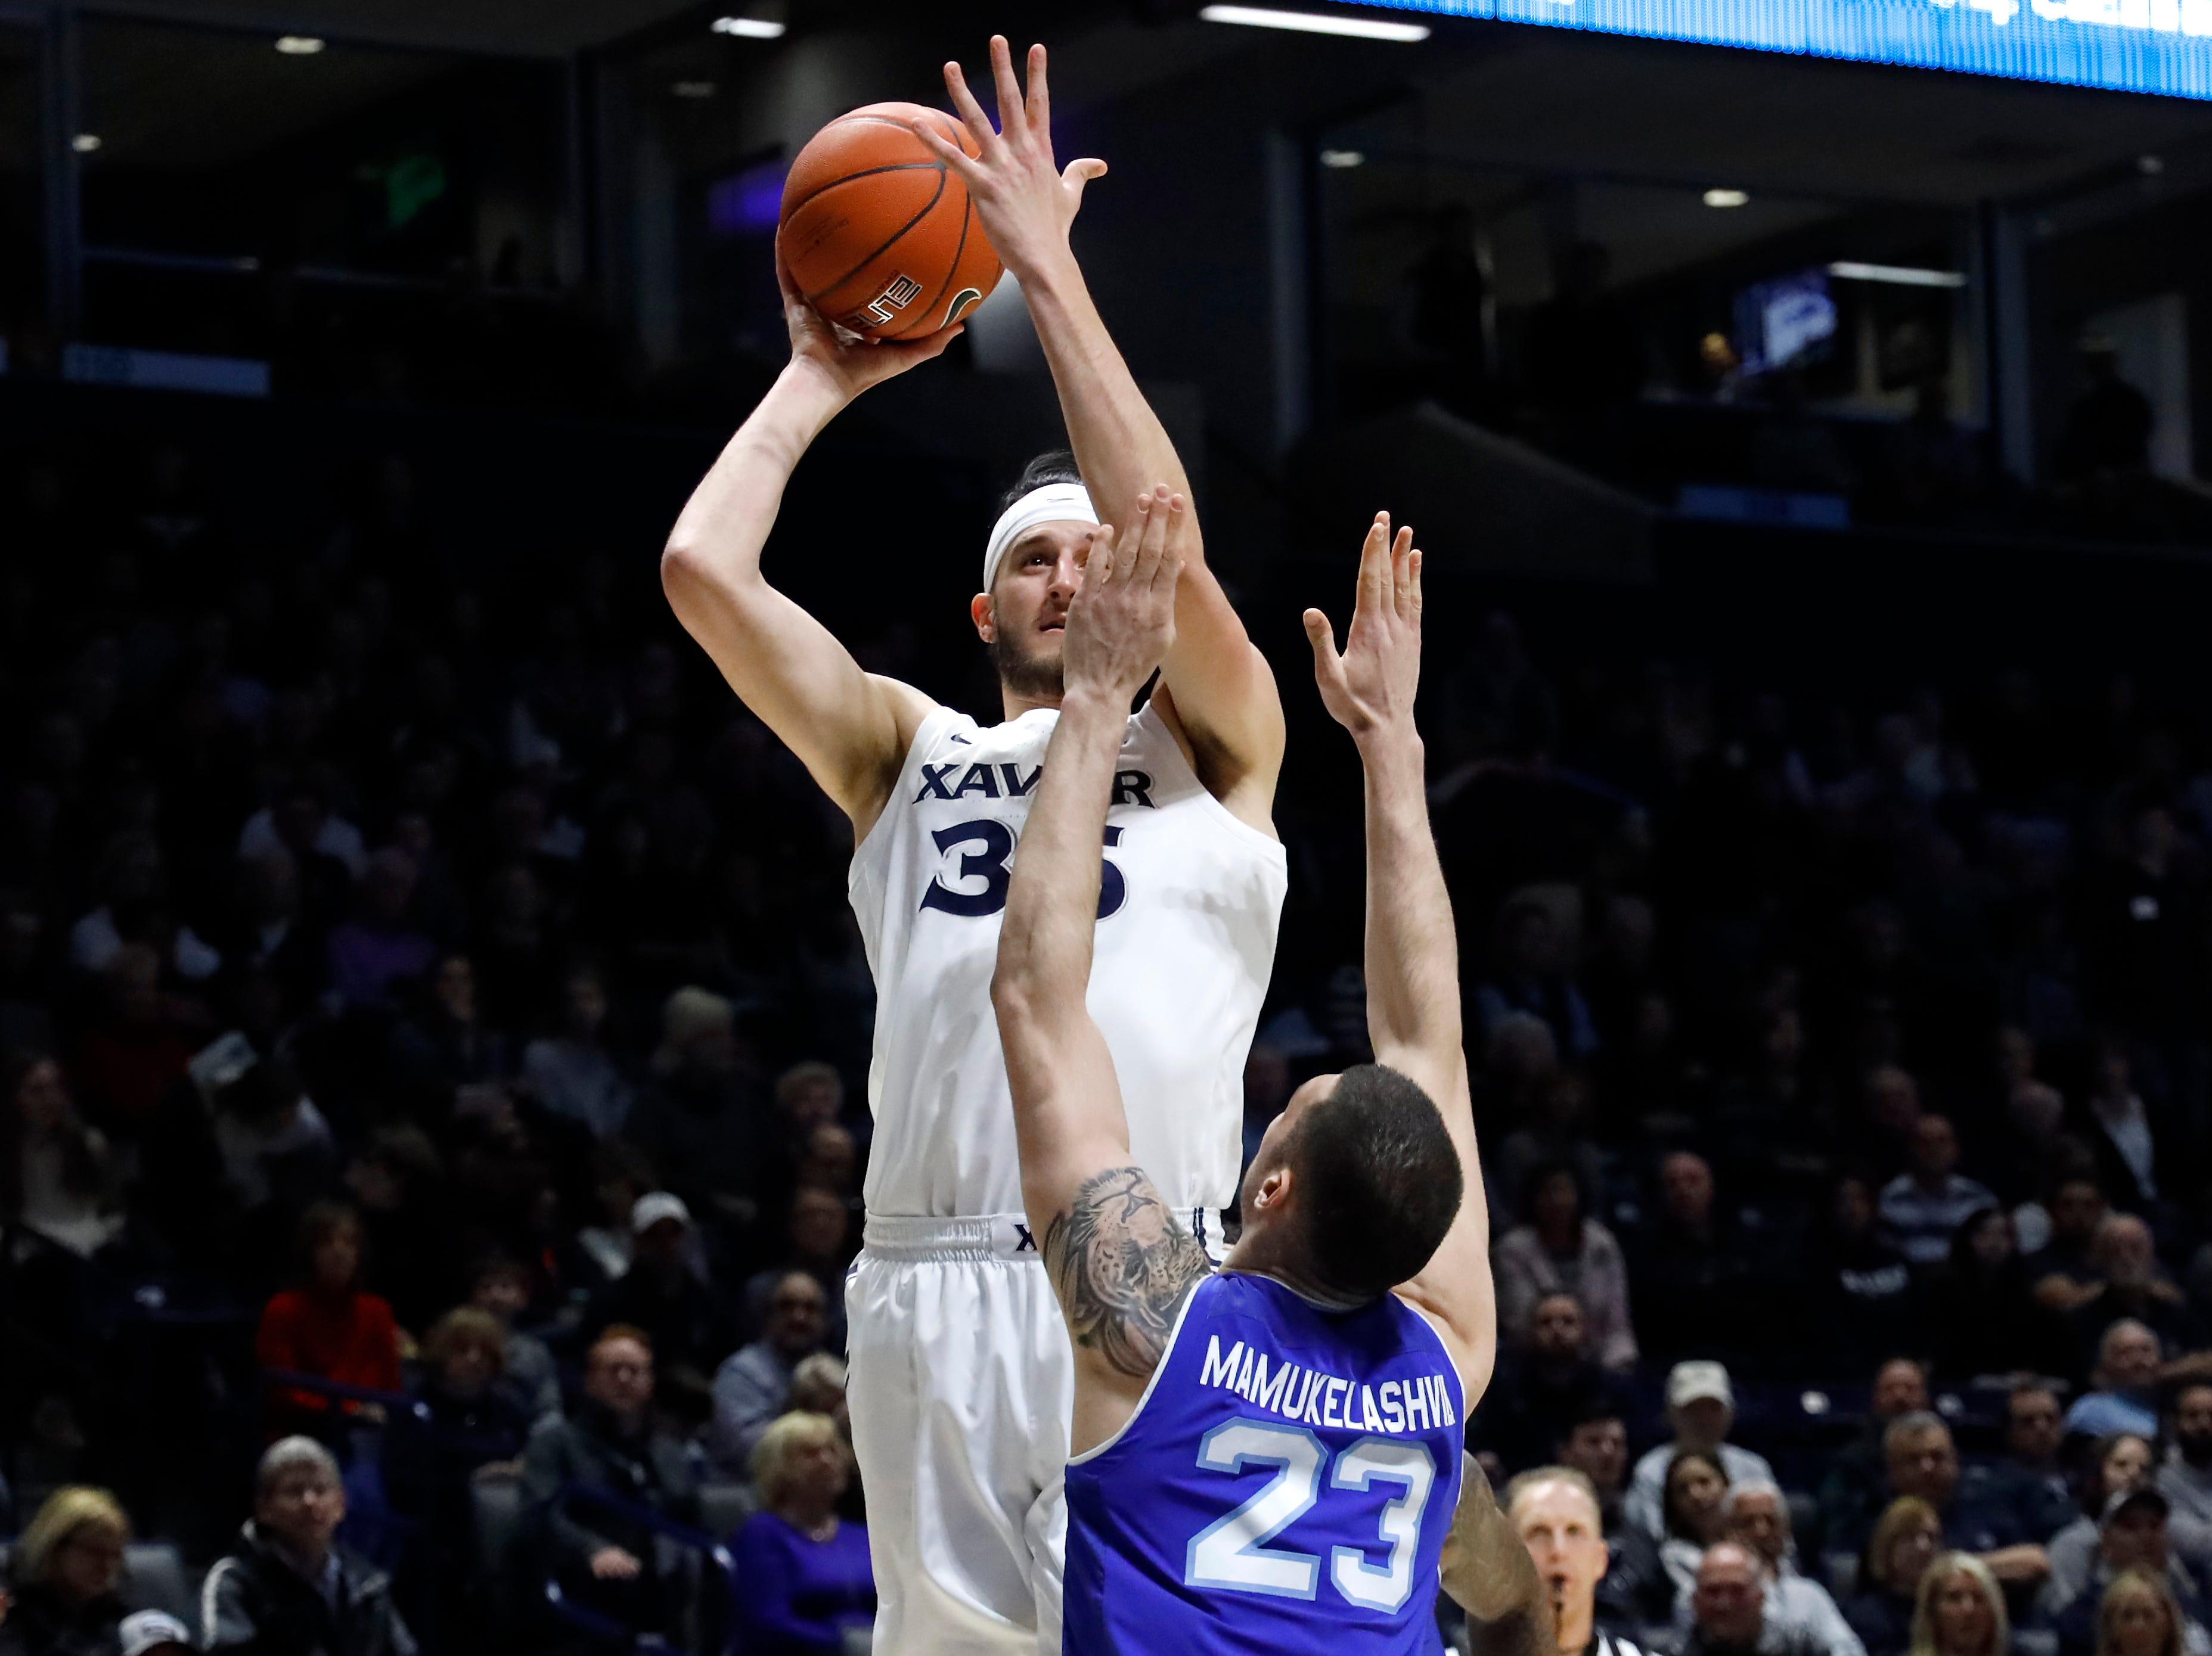 Xavier Musketeers forward Zach Hankins (35) rises for a shot over Seton Hall Pirates forward Sandro Mamukelashvili (23) in the first half of an NCAA college basketball game, Wednesday, Jan. 2, 2019, at the Cintas Center in Cincinnati.